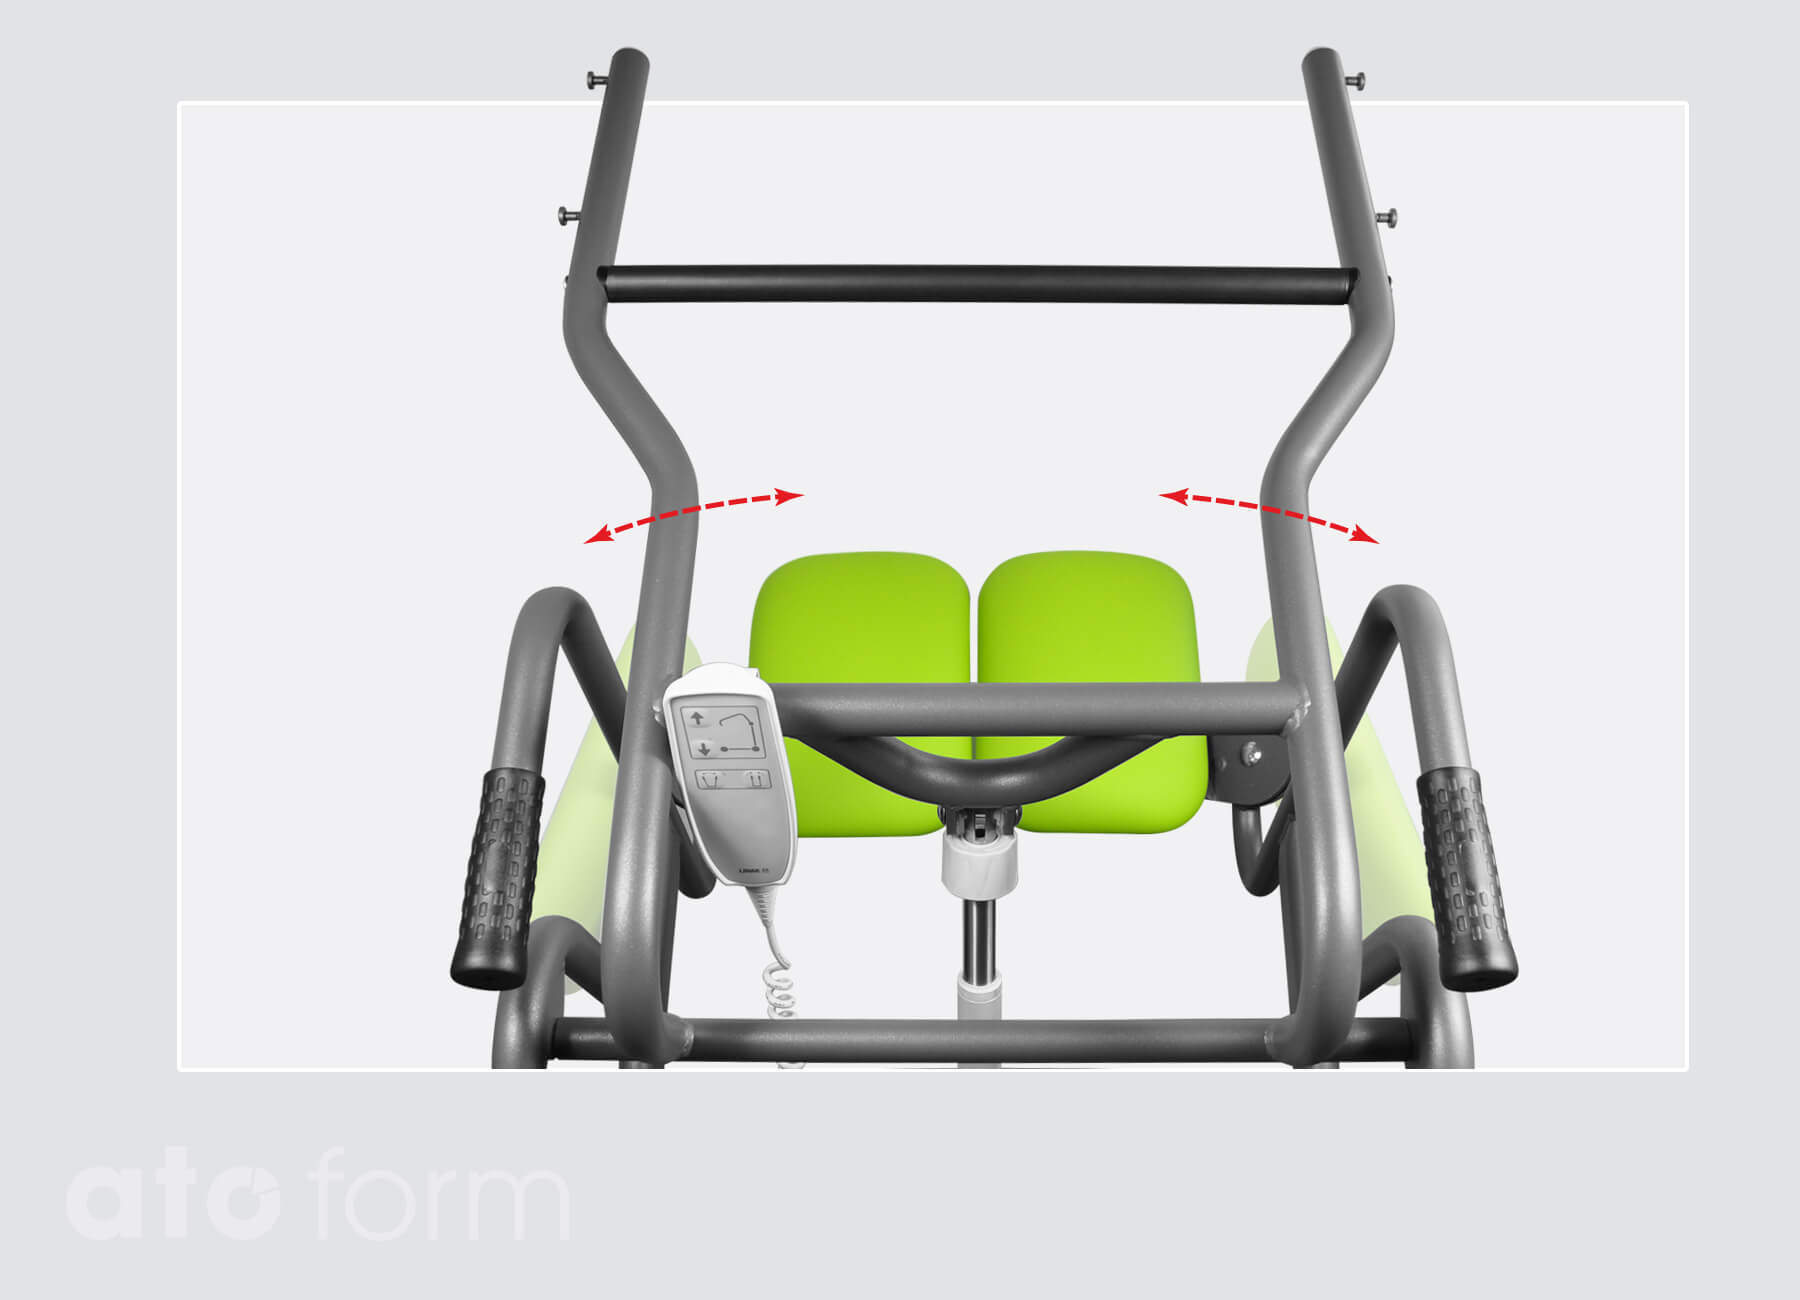 Stand-up and transfer aid Mover - quick, stable and safe transfer